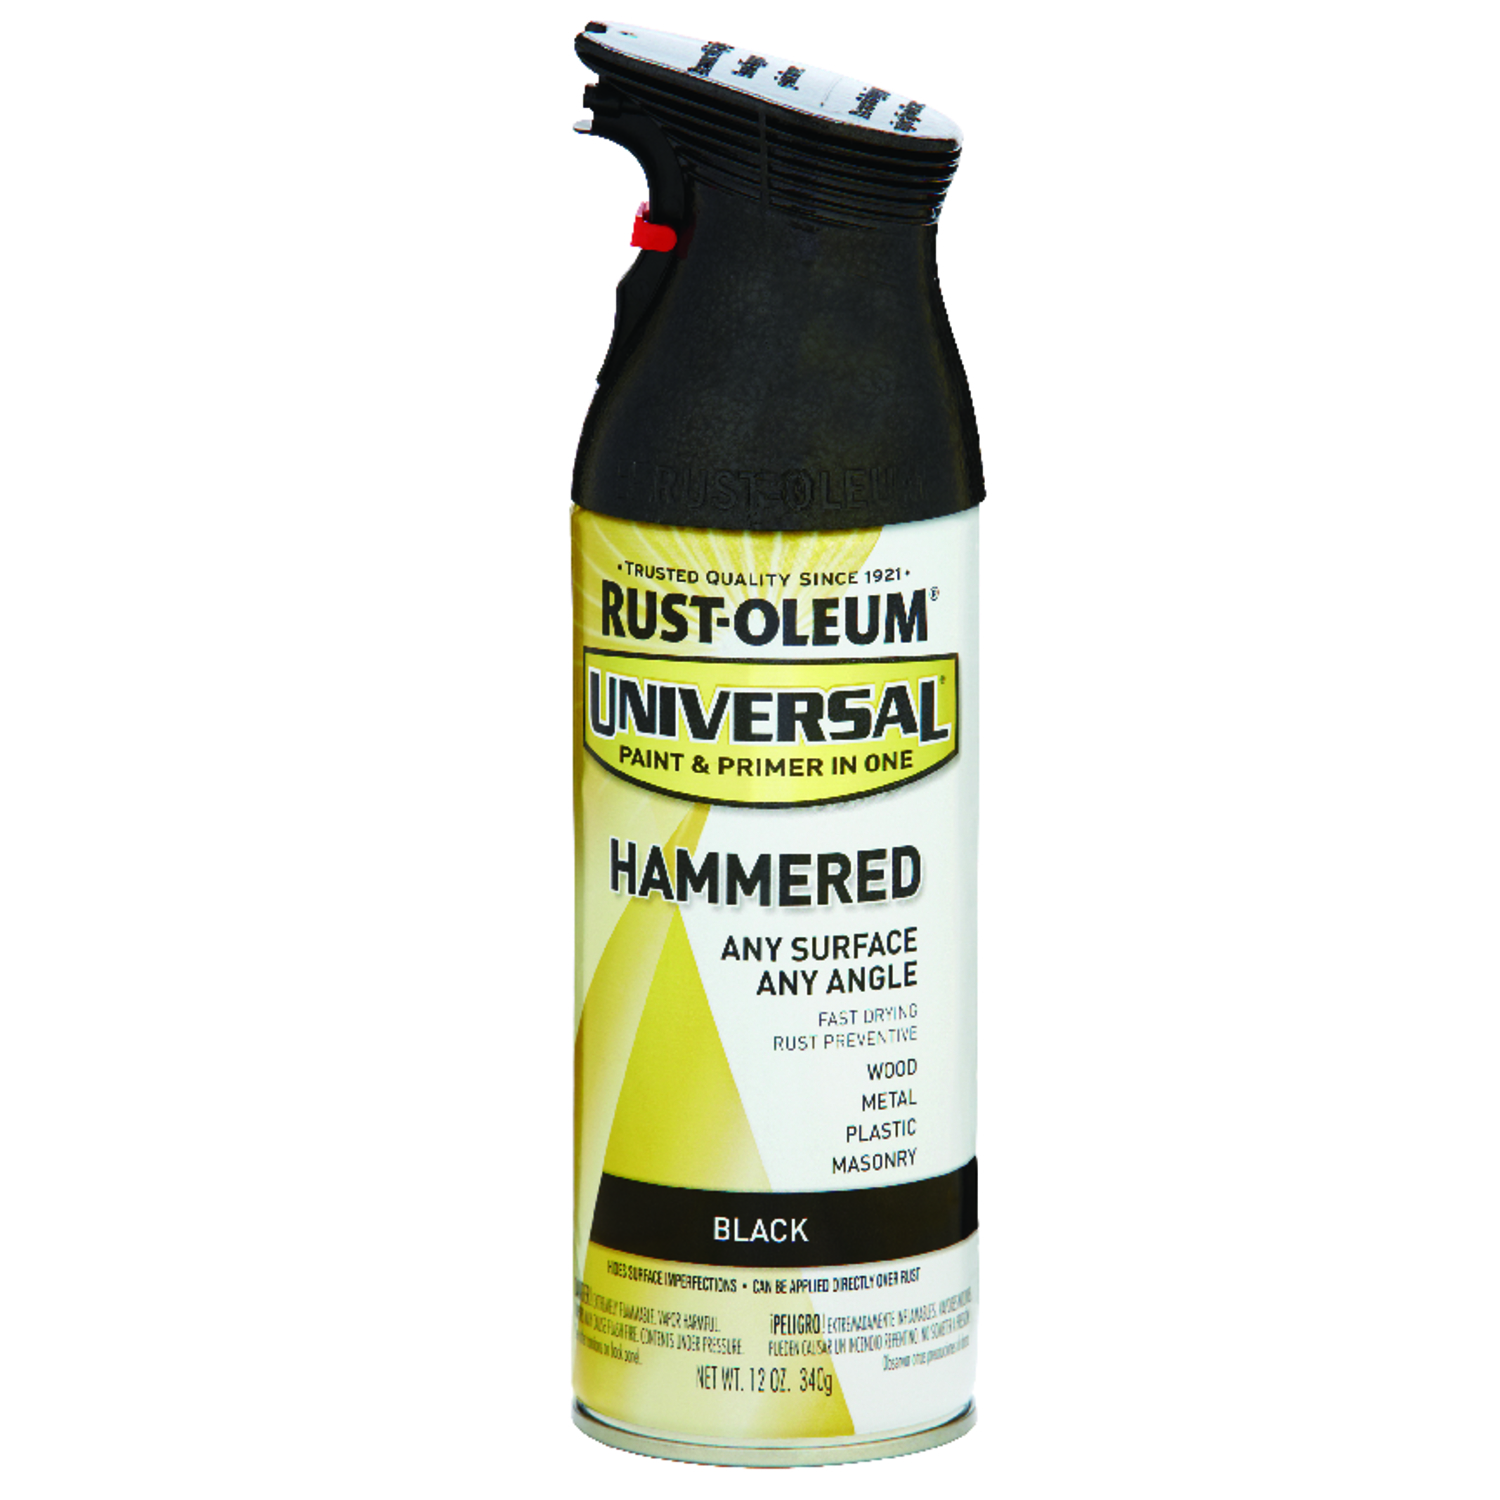 Rust-Oleum  Universal  Hammered  Black  Spray Paint  12 oz.